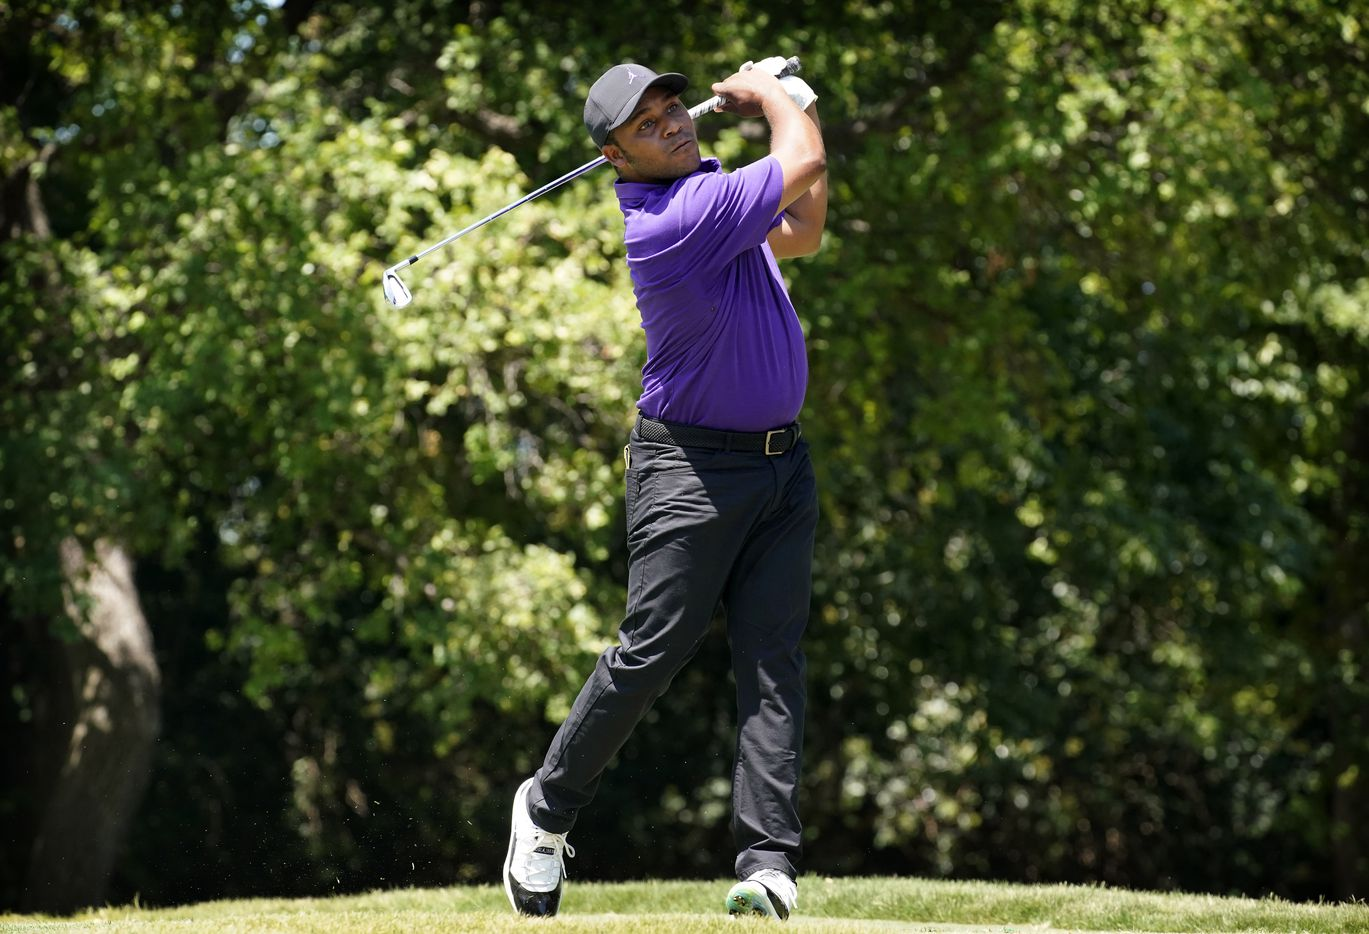 PGA Tour golfer Harold Varner III tees off on the par-4, 9th during the third round of the Charles Schwab Challenge at the Colonial Country Club in Fort Worth, Saturday, June 13, 2020.  The Challenge is the first tour event since the COVID-19 pandemic began. (Tom Fox/The Dallas Morning News)